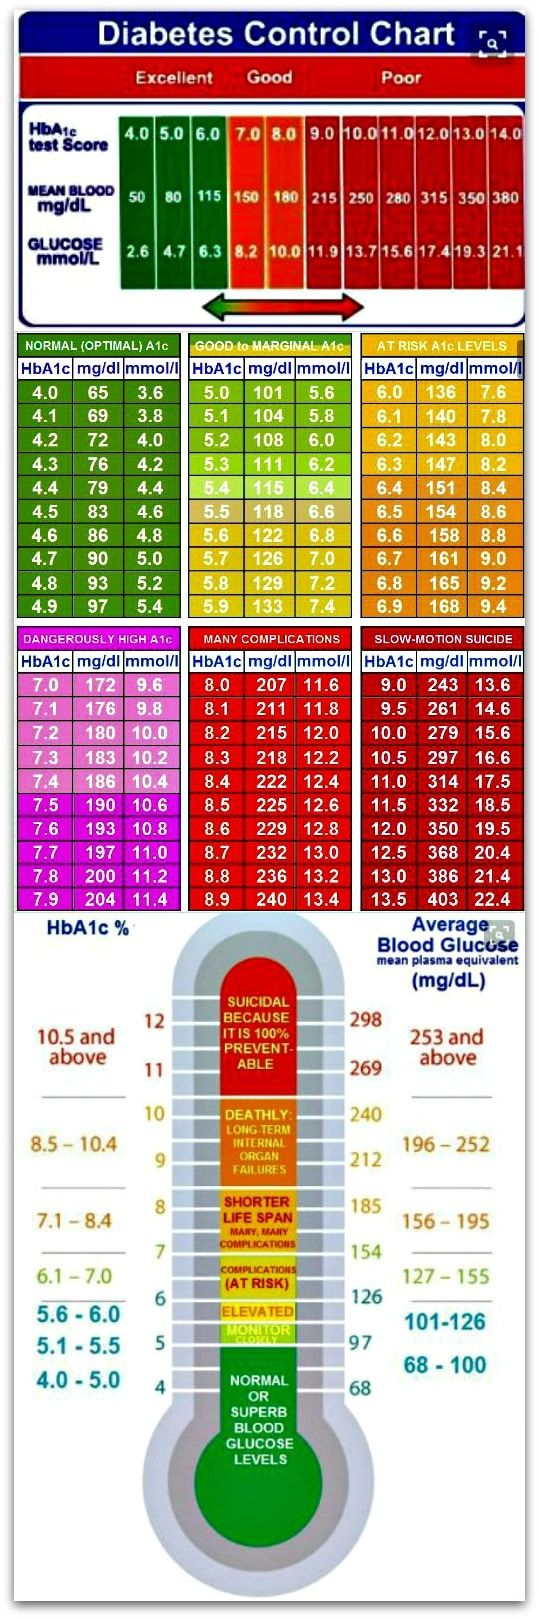 Blood sugar range what is normal blood sugar level a1c chart blood sugar range what is normal blood sugar level a1c chart here is a chart to show a relation between a1c and blood glucose nvjuhfo Choice Image